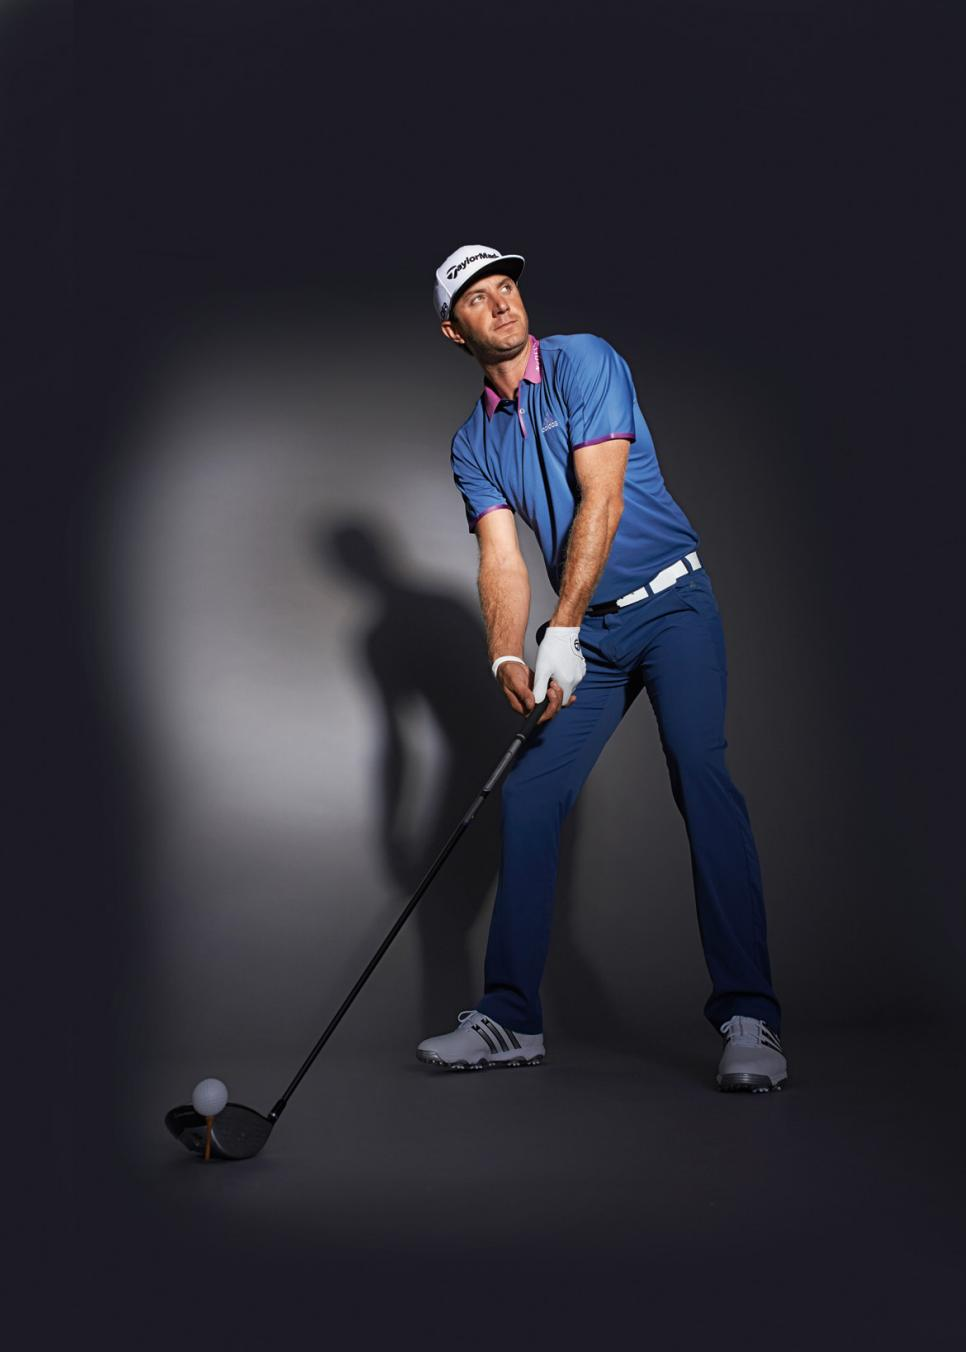 Dustin-Johnson-Crush-Your-Driver-Address-Staff'.jpg